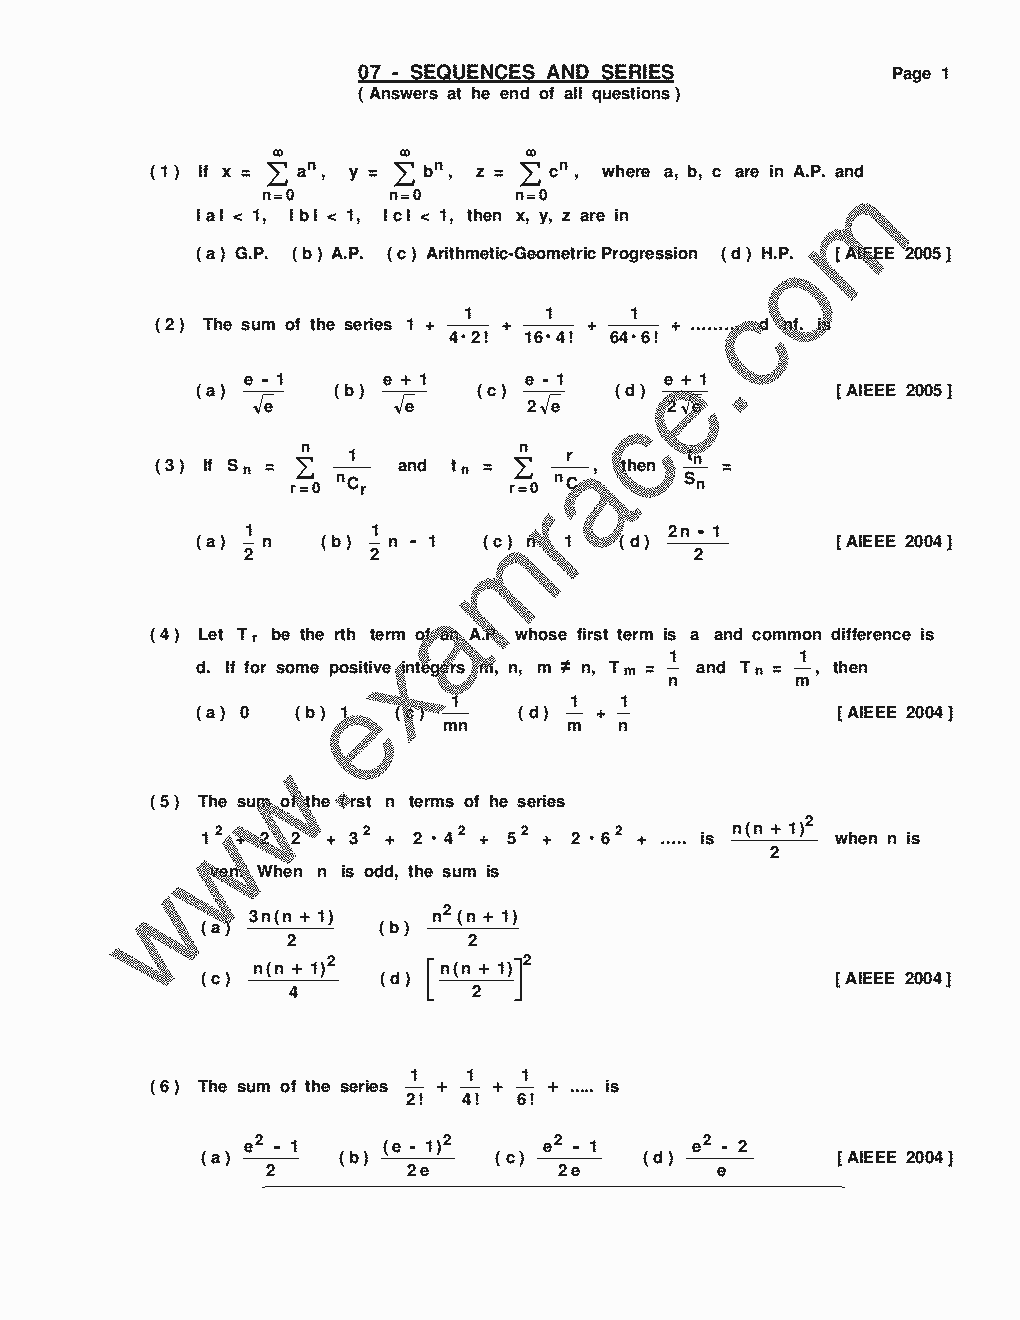 Mathematics Sequence Series MCQ- Translation in Hindi, Kannada